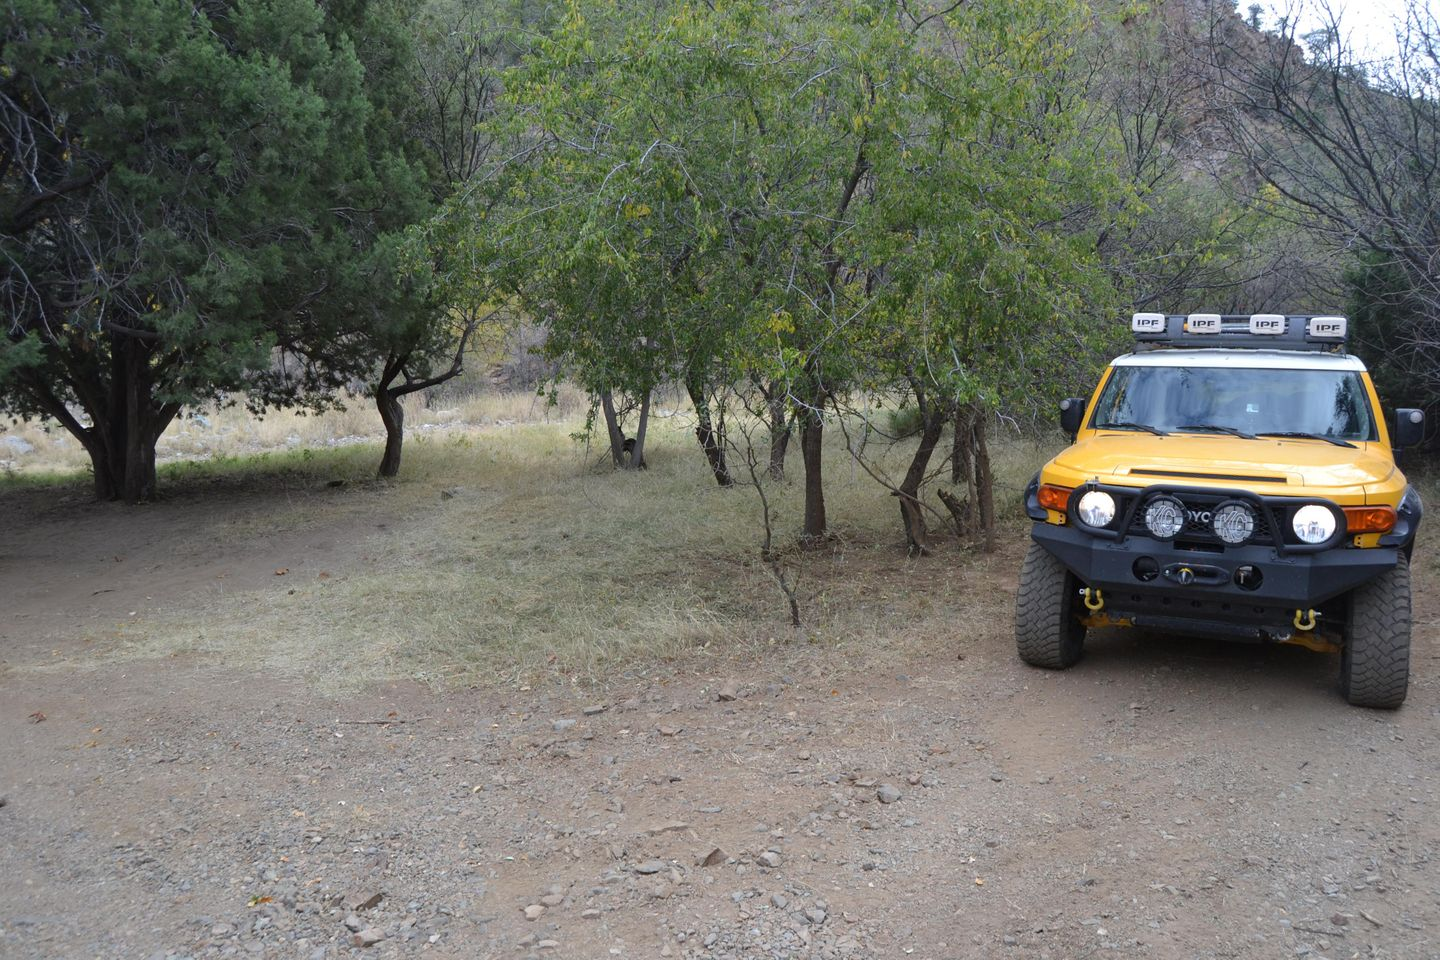 Charouleau Gap / FR# 736 - Waypoint 27: Best Camping Spot Stay Left